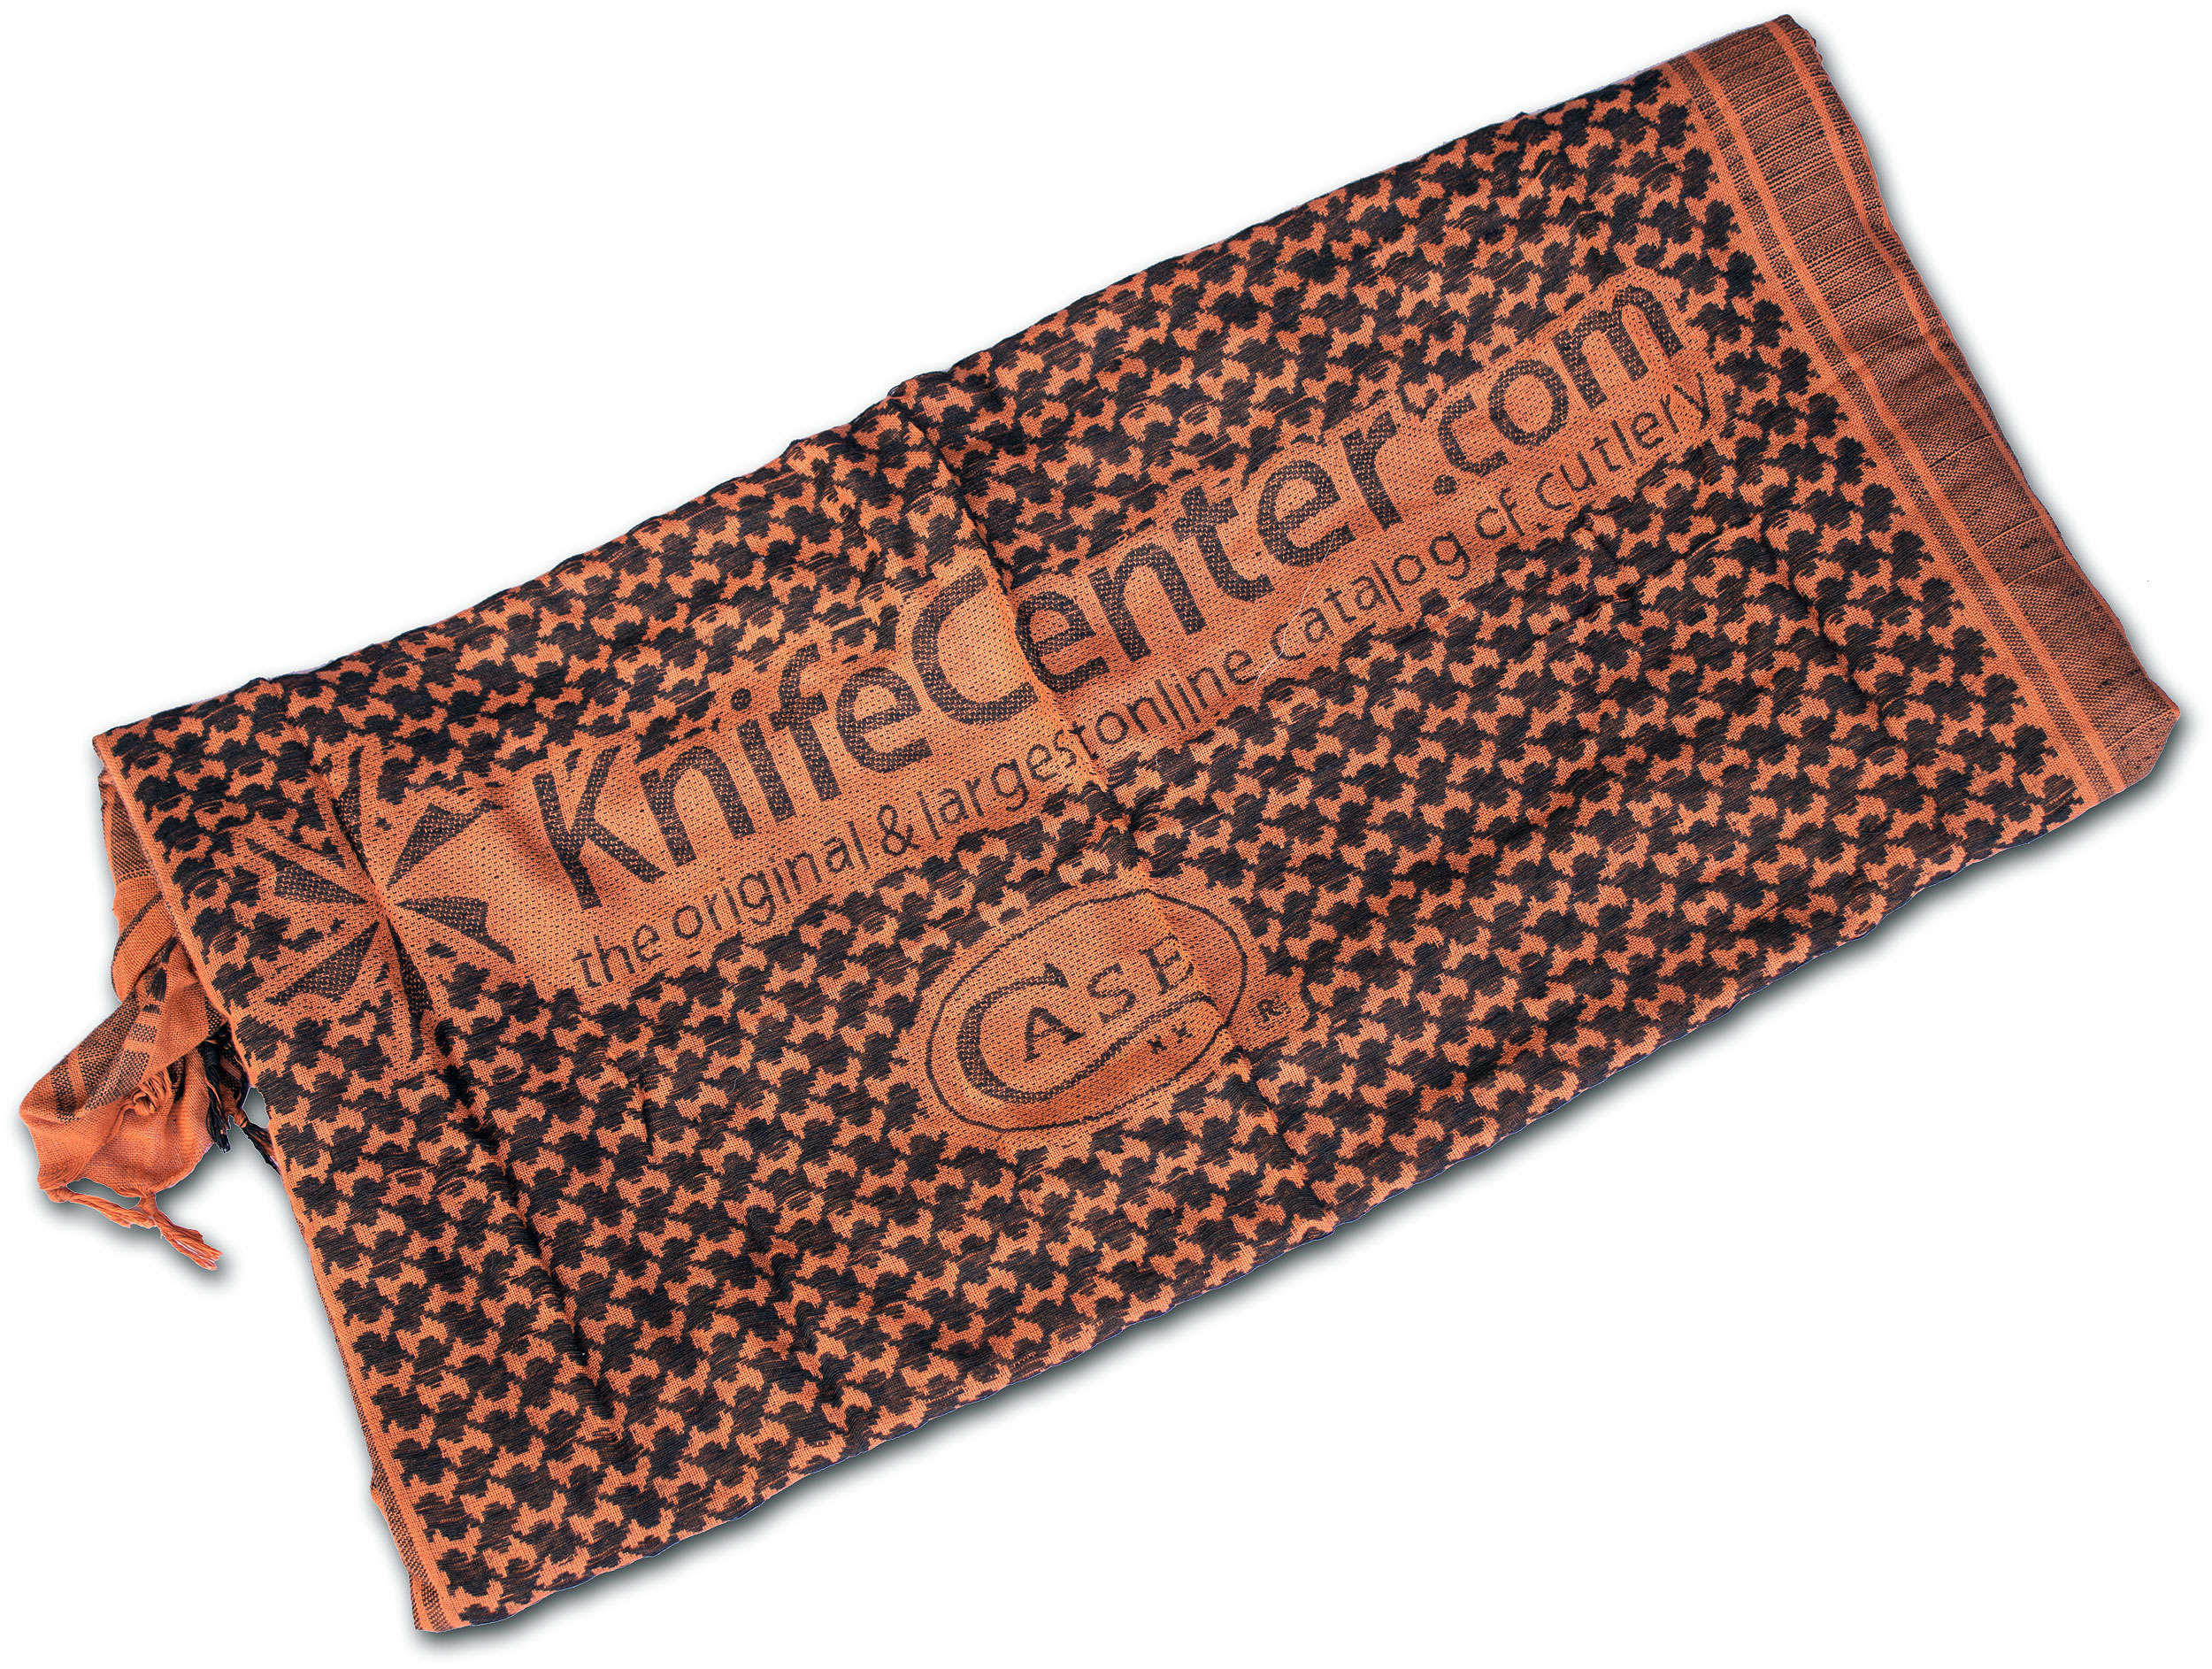 Red Rock Outdoor Gear KnifeCenter/Case Shemagh Head Wrap, Orange/Black (Promo Only, Not for Sale)